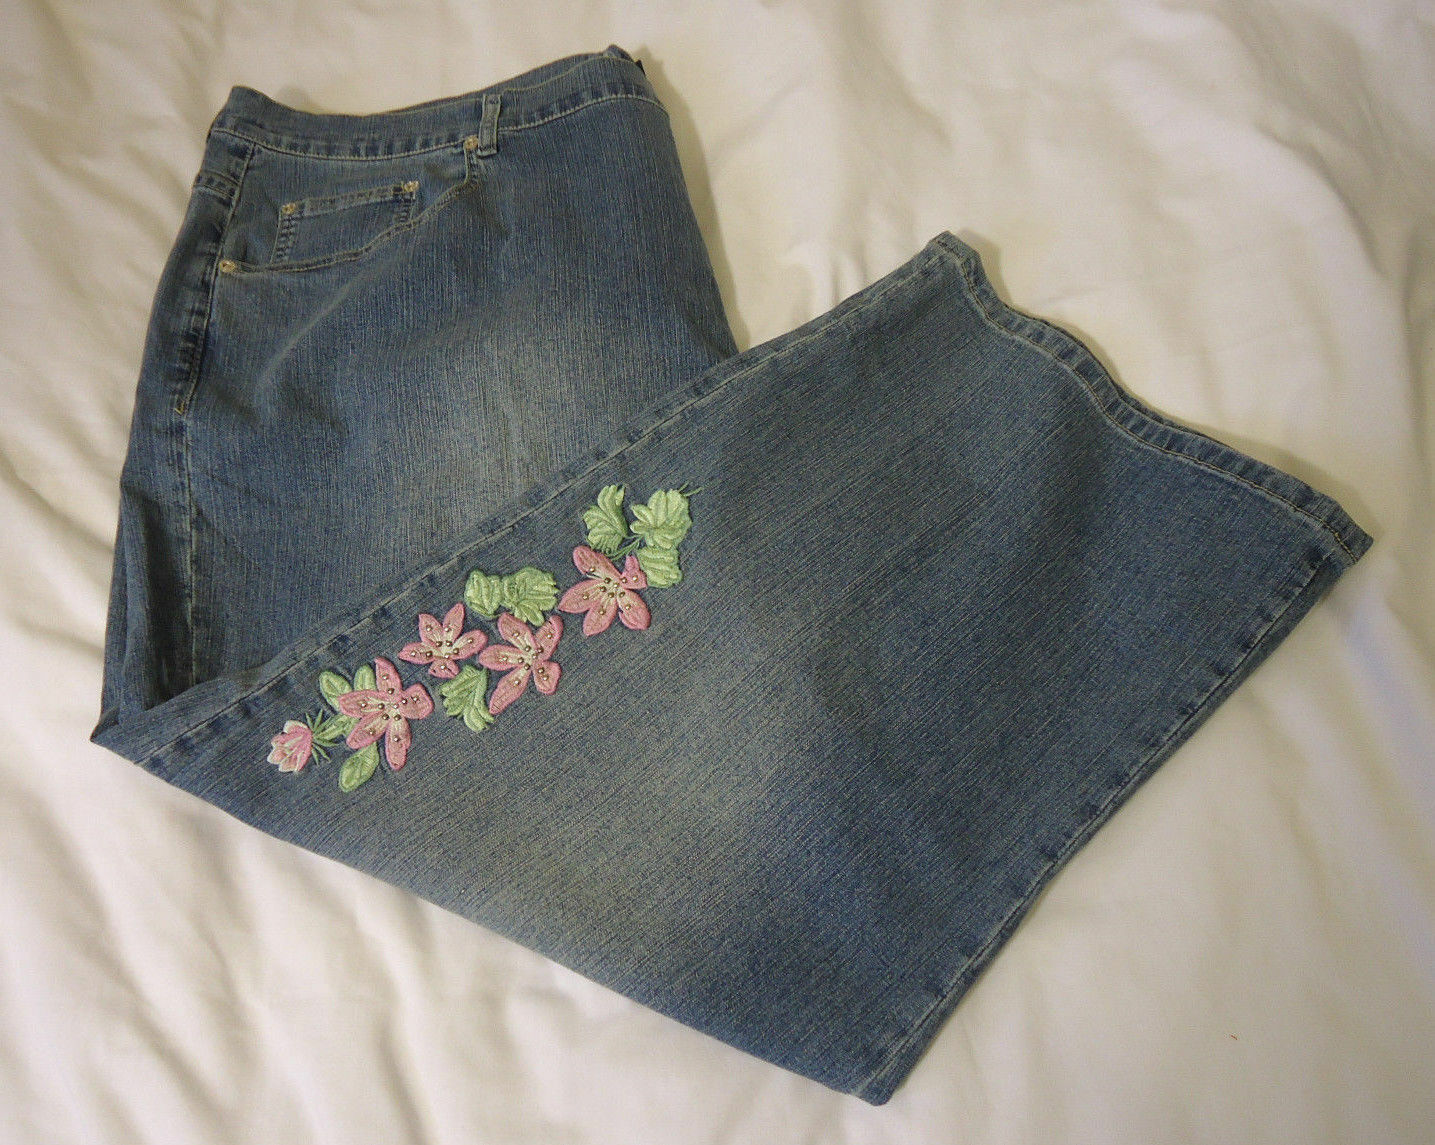 NWT AVENUE Embrodiery Cropped Capri Jeans Plus Size 26 Floral